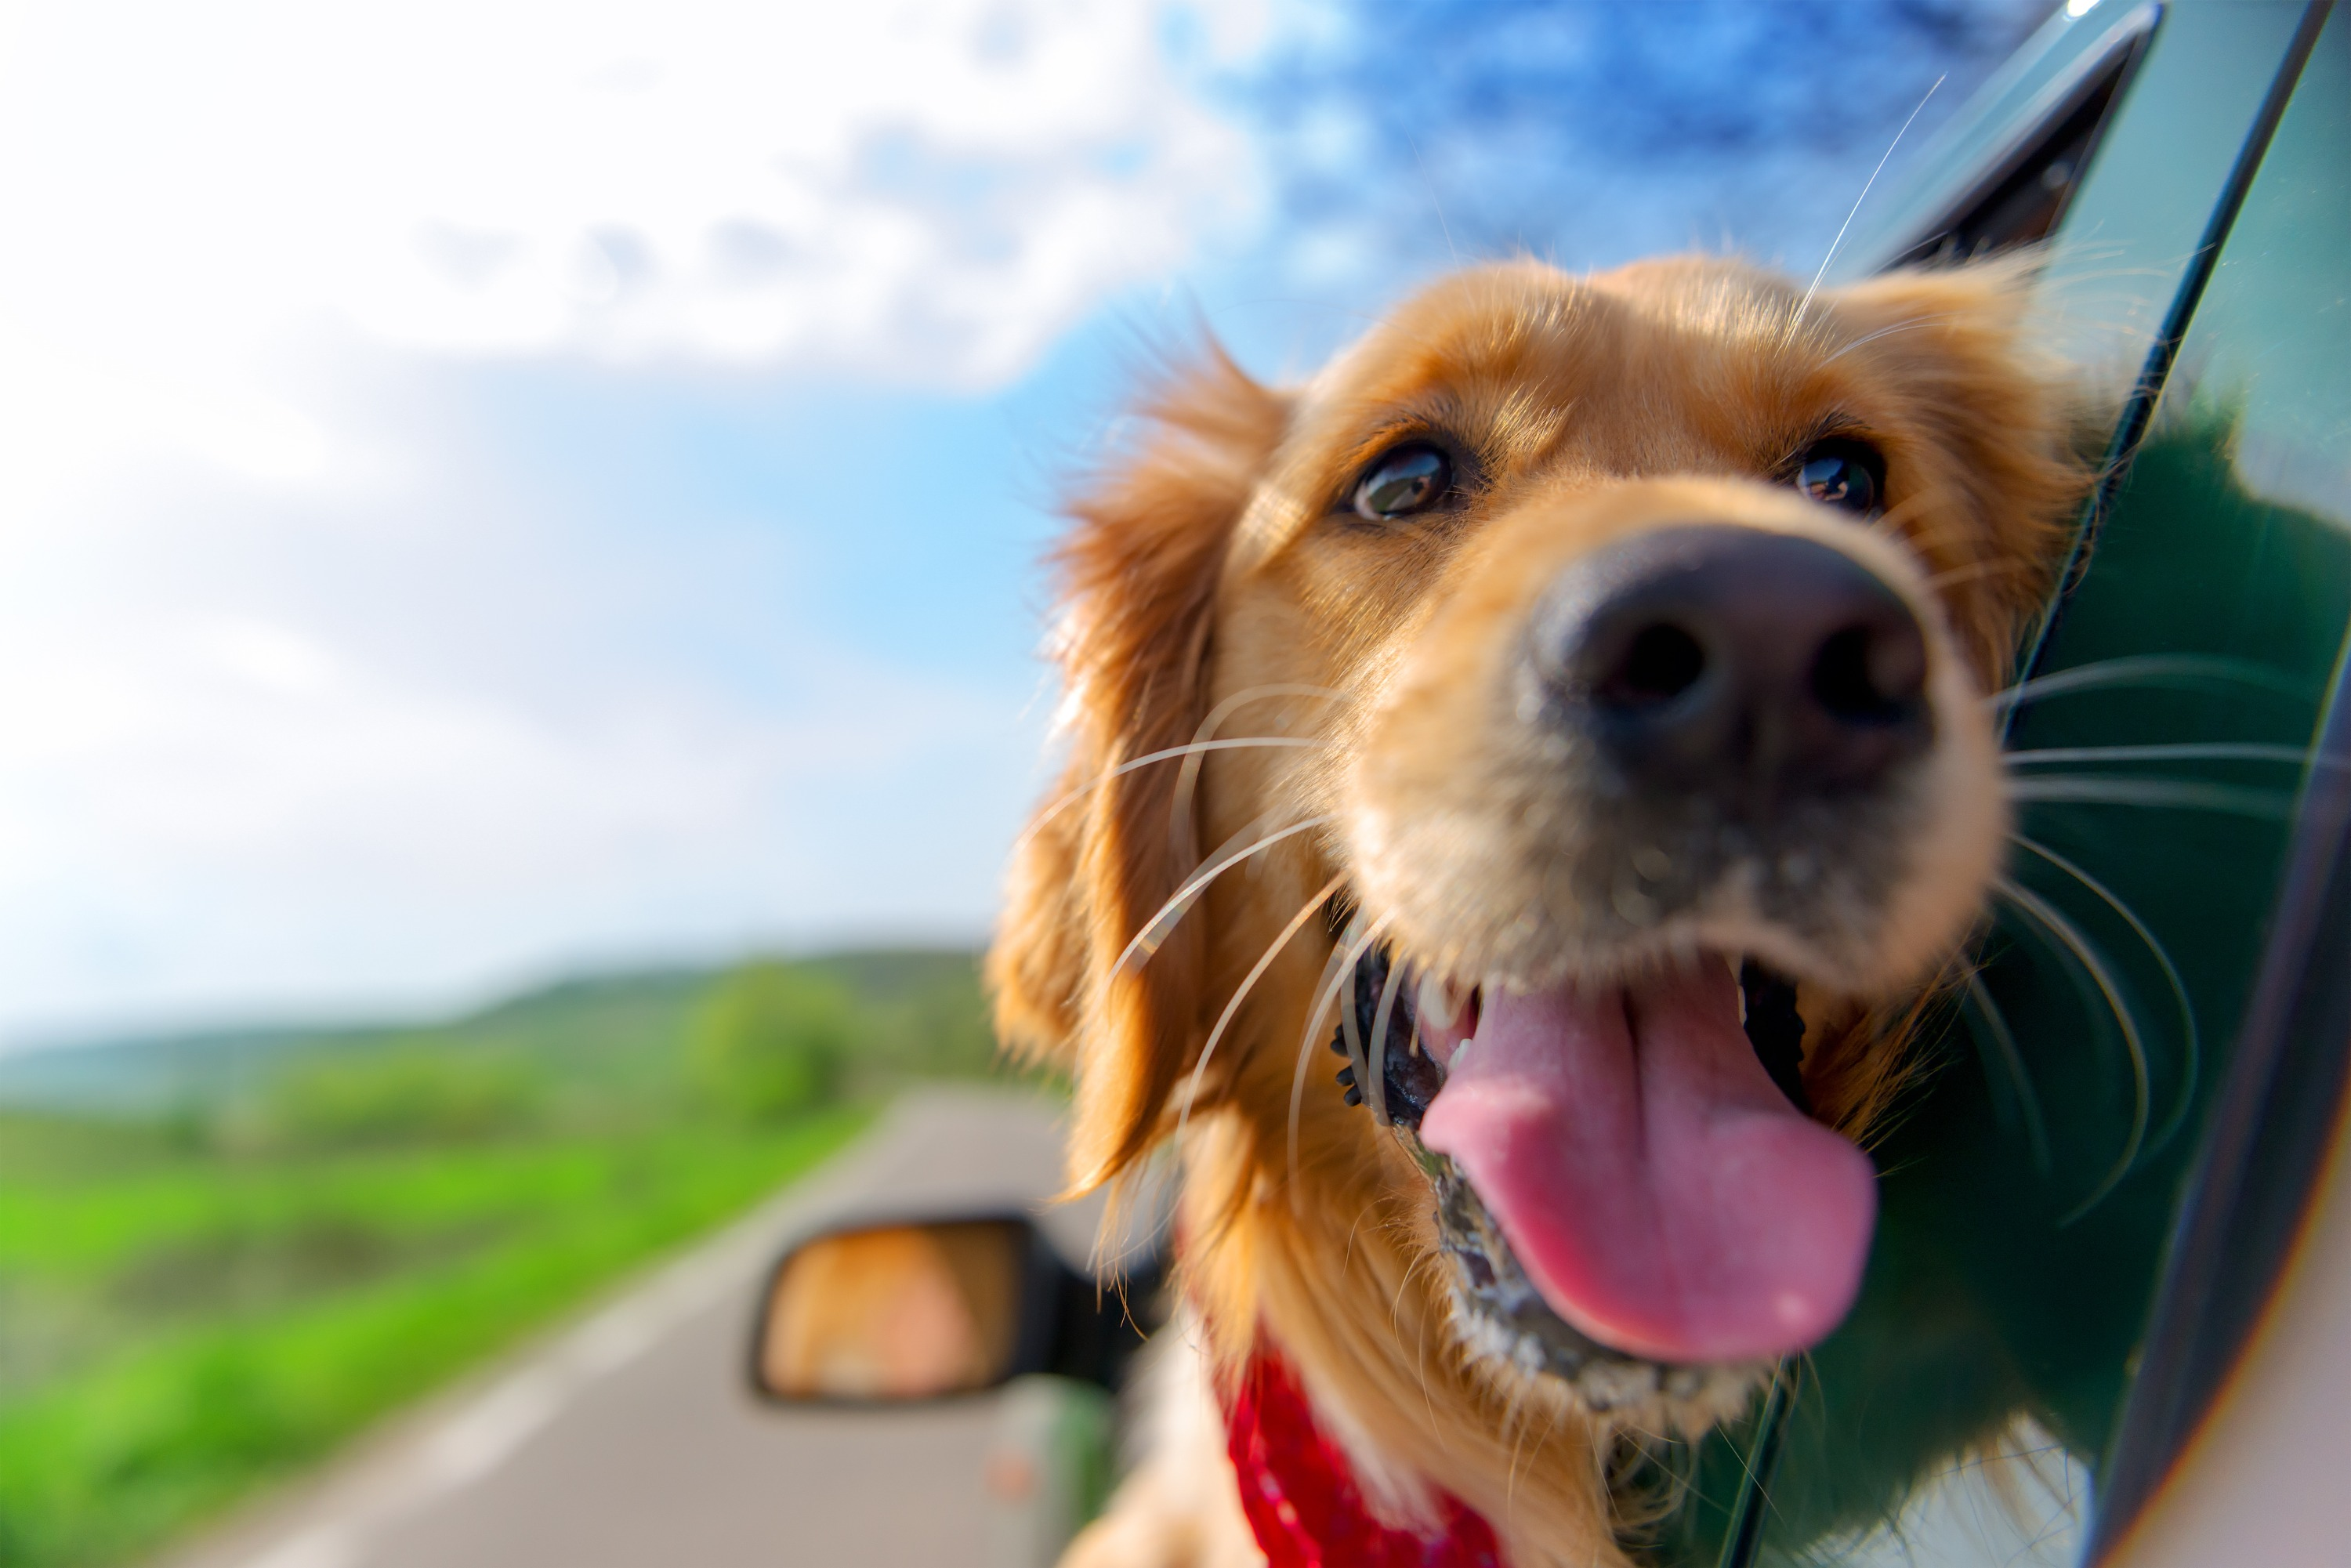 A Golden Retriever wearing a red bandana around his neck sticks his head out of the window of a dark green car with an open highway behind him.